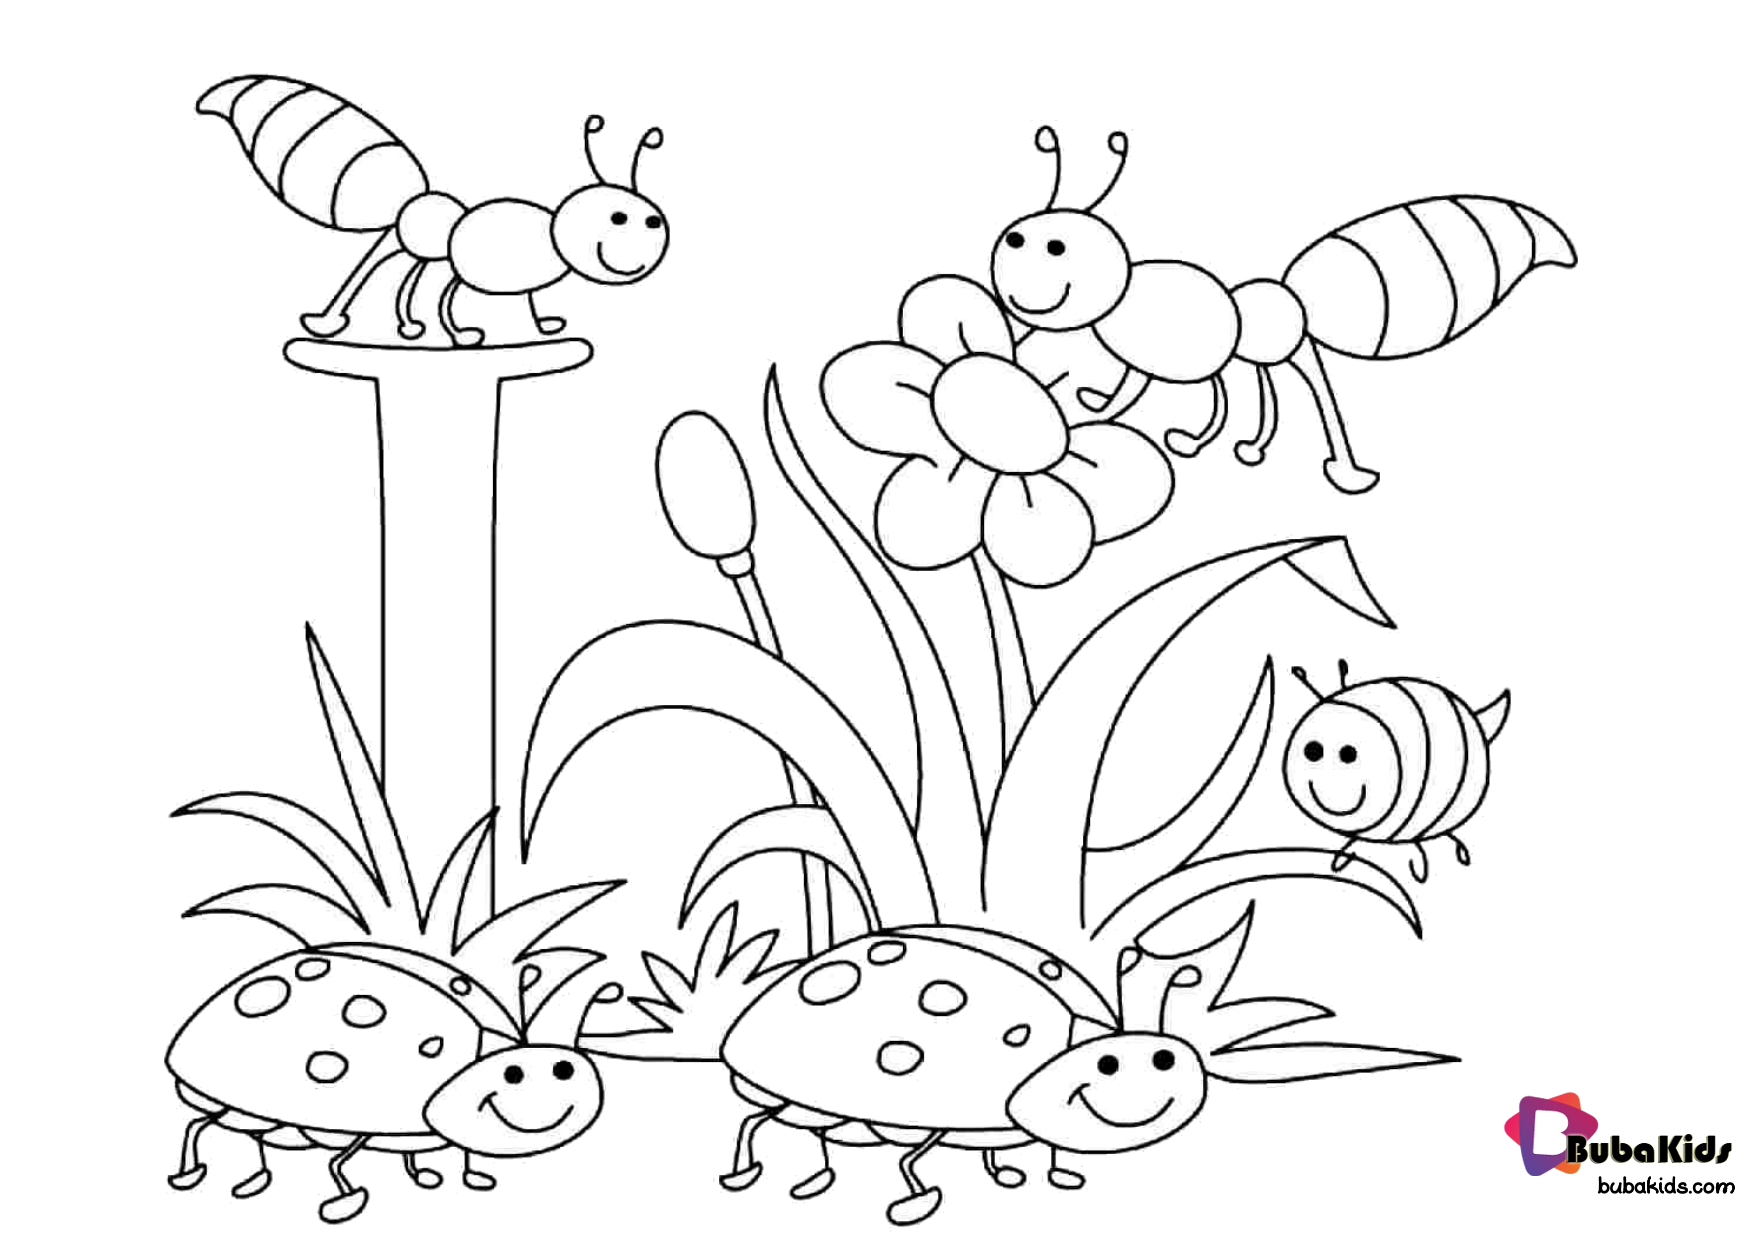 Free Download Simple And Easy Coloring Page For Preschool Collection Of Animal Coloring Pages Summer Coloring Pages Easy Coloring Pages Spring Coloring Sheets